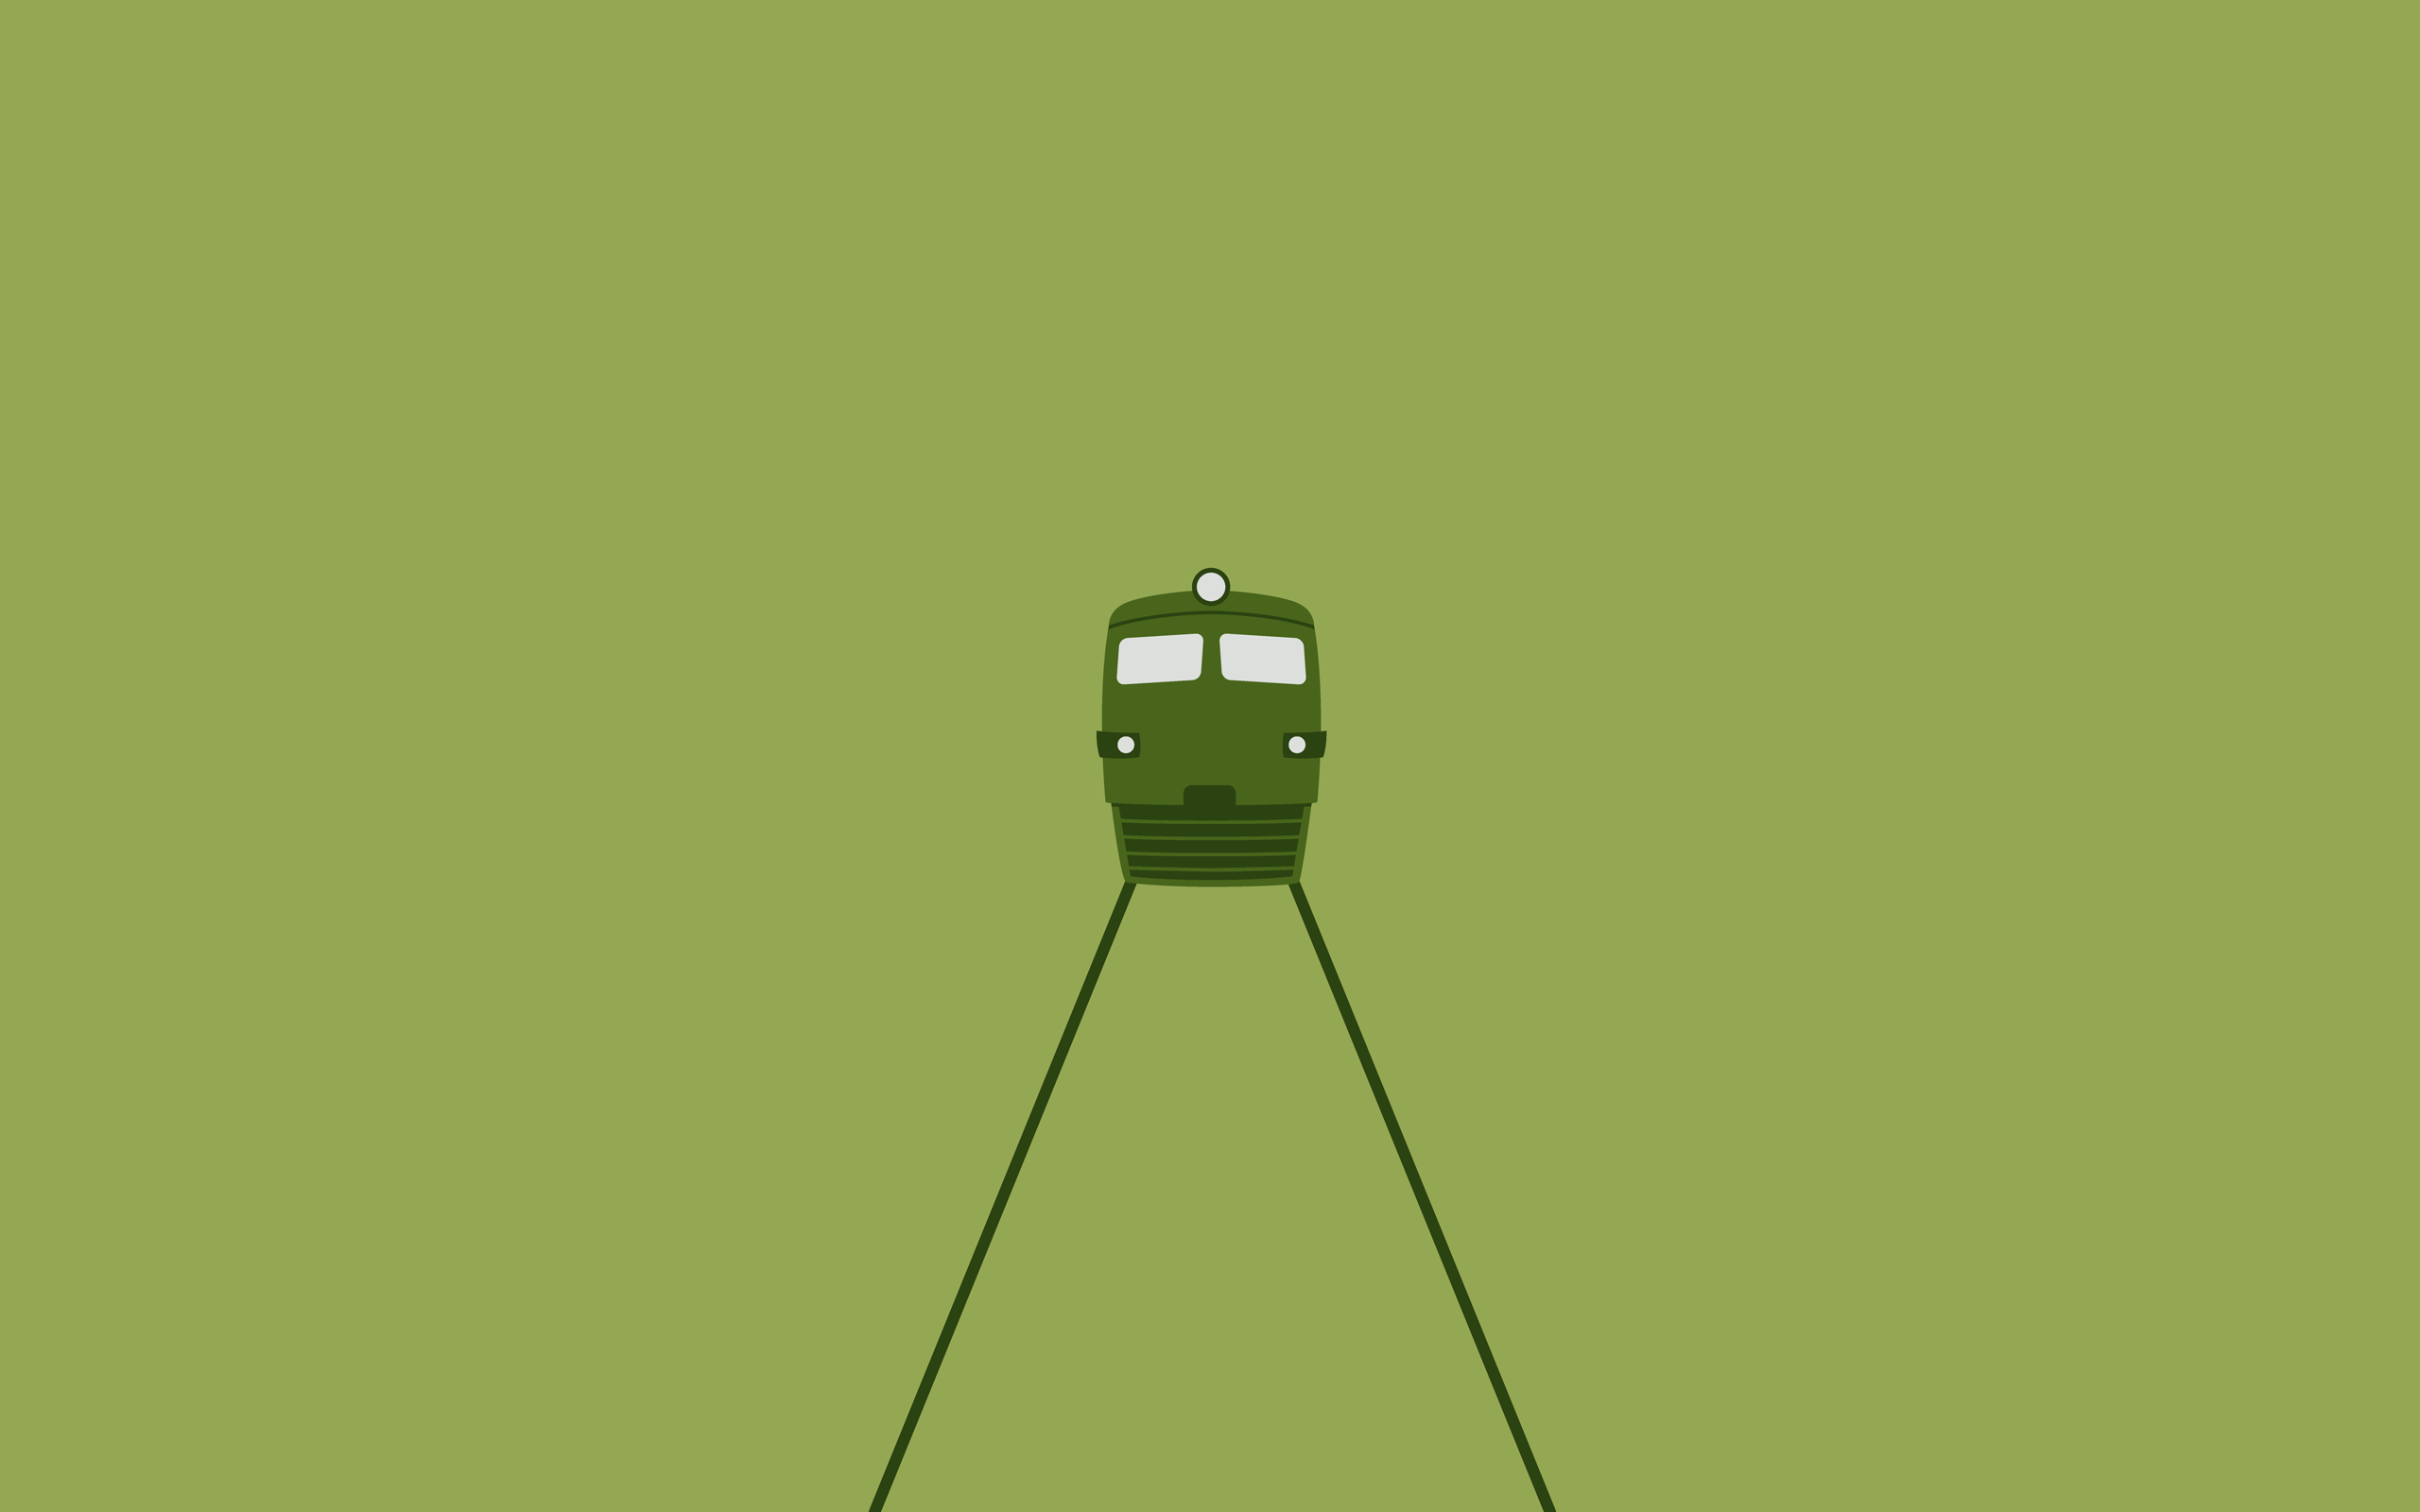 wallpapers/train.png